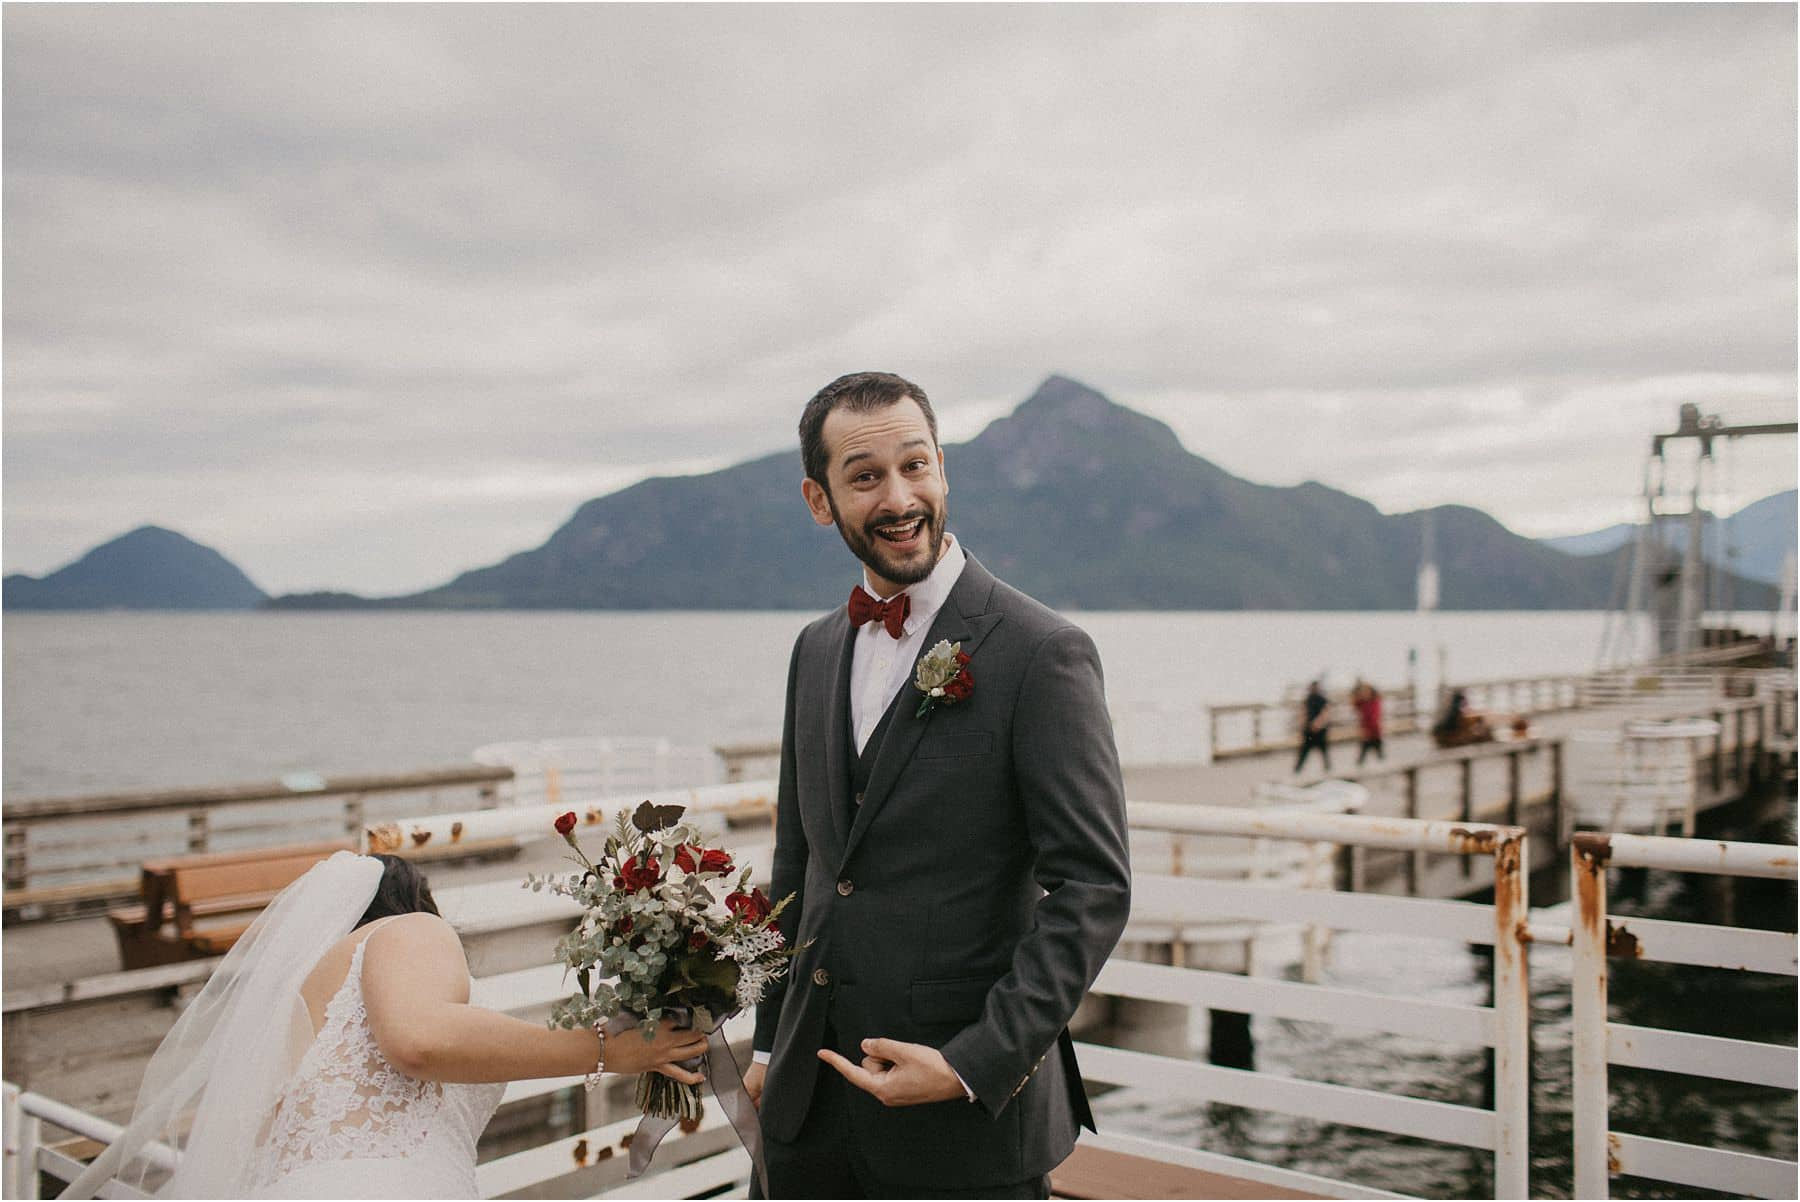 Groom excited for his Squamish Micro Wedding after seeing his bride